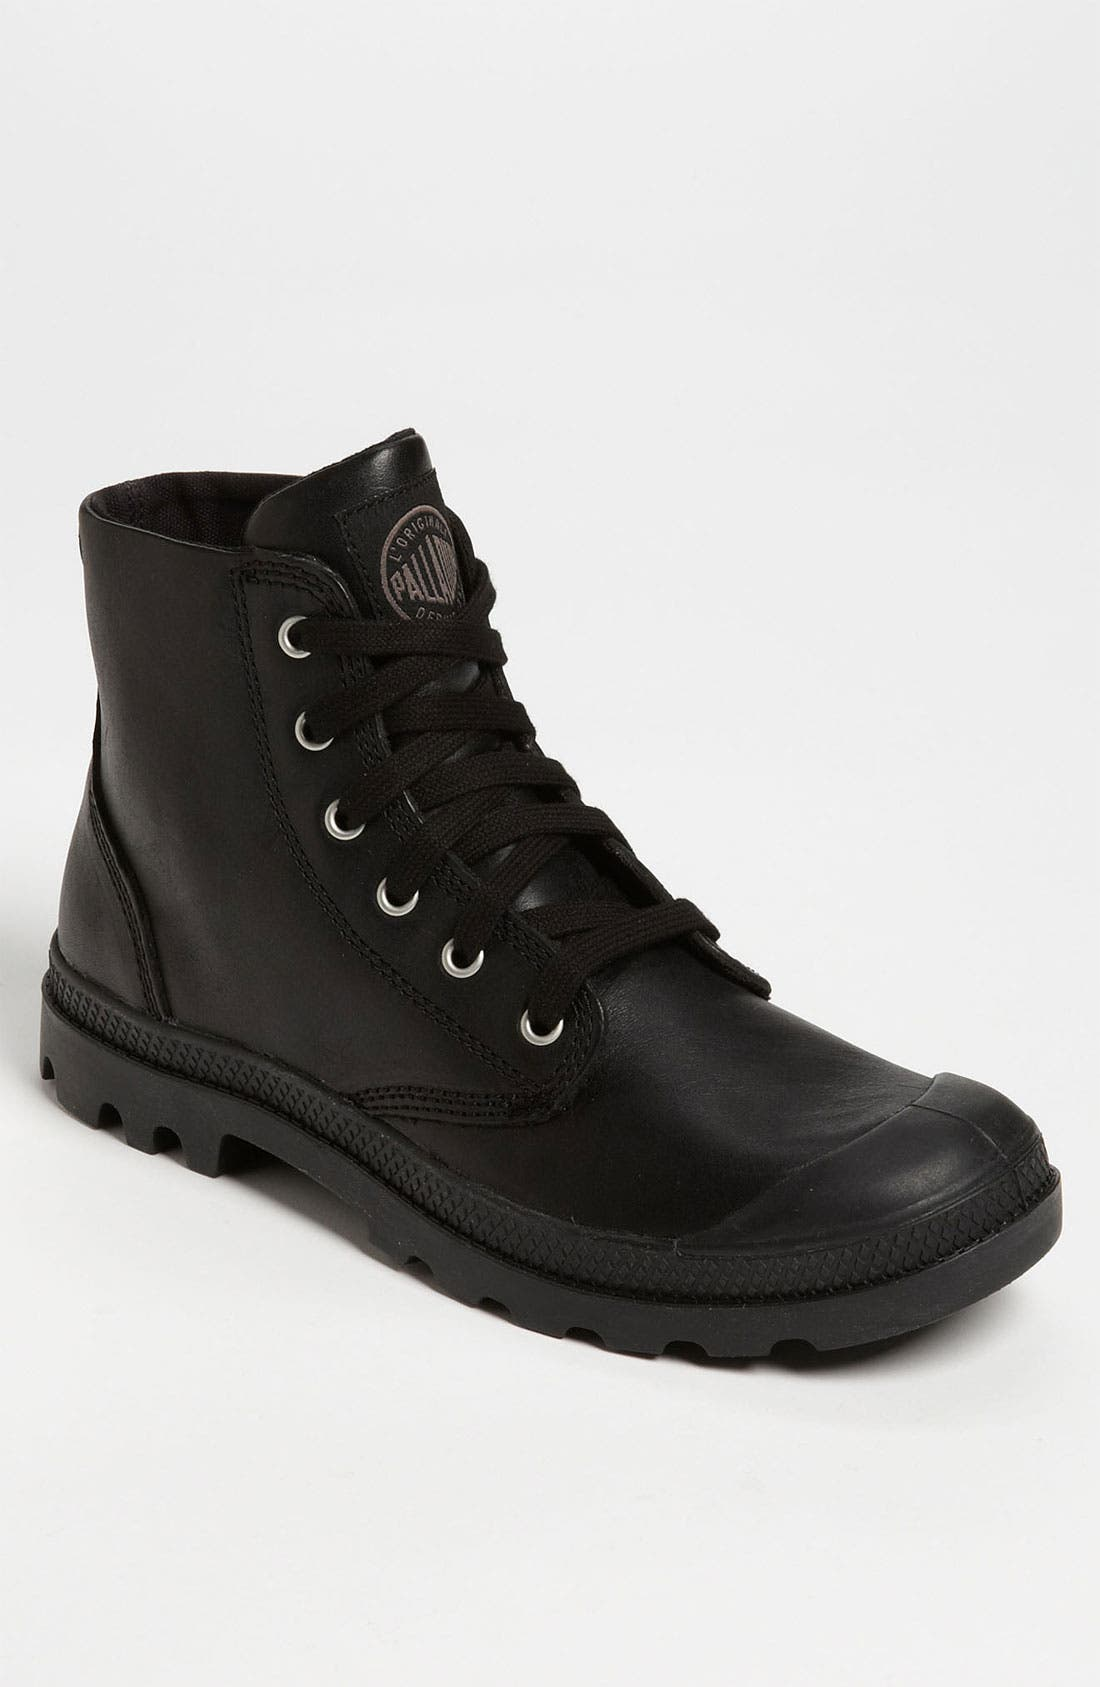 Alternate Image 1 Selected - Palladium 'Pampa Hi' Leather Boot